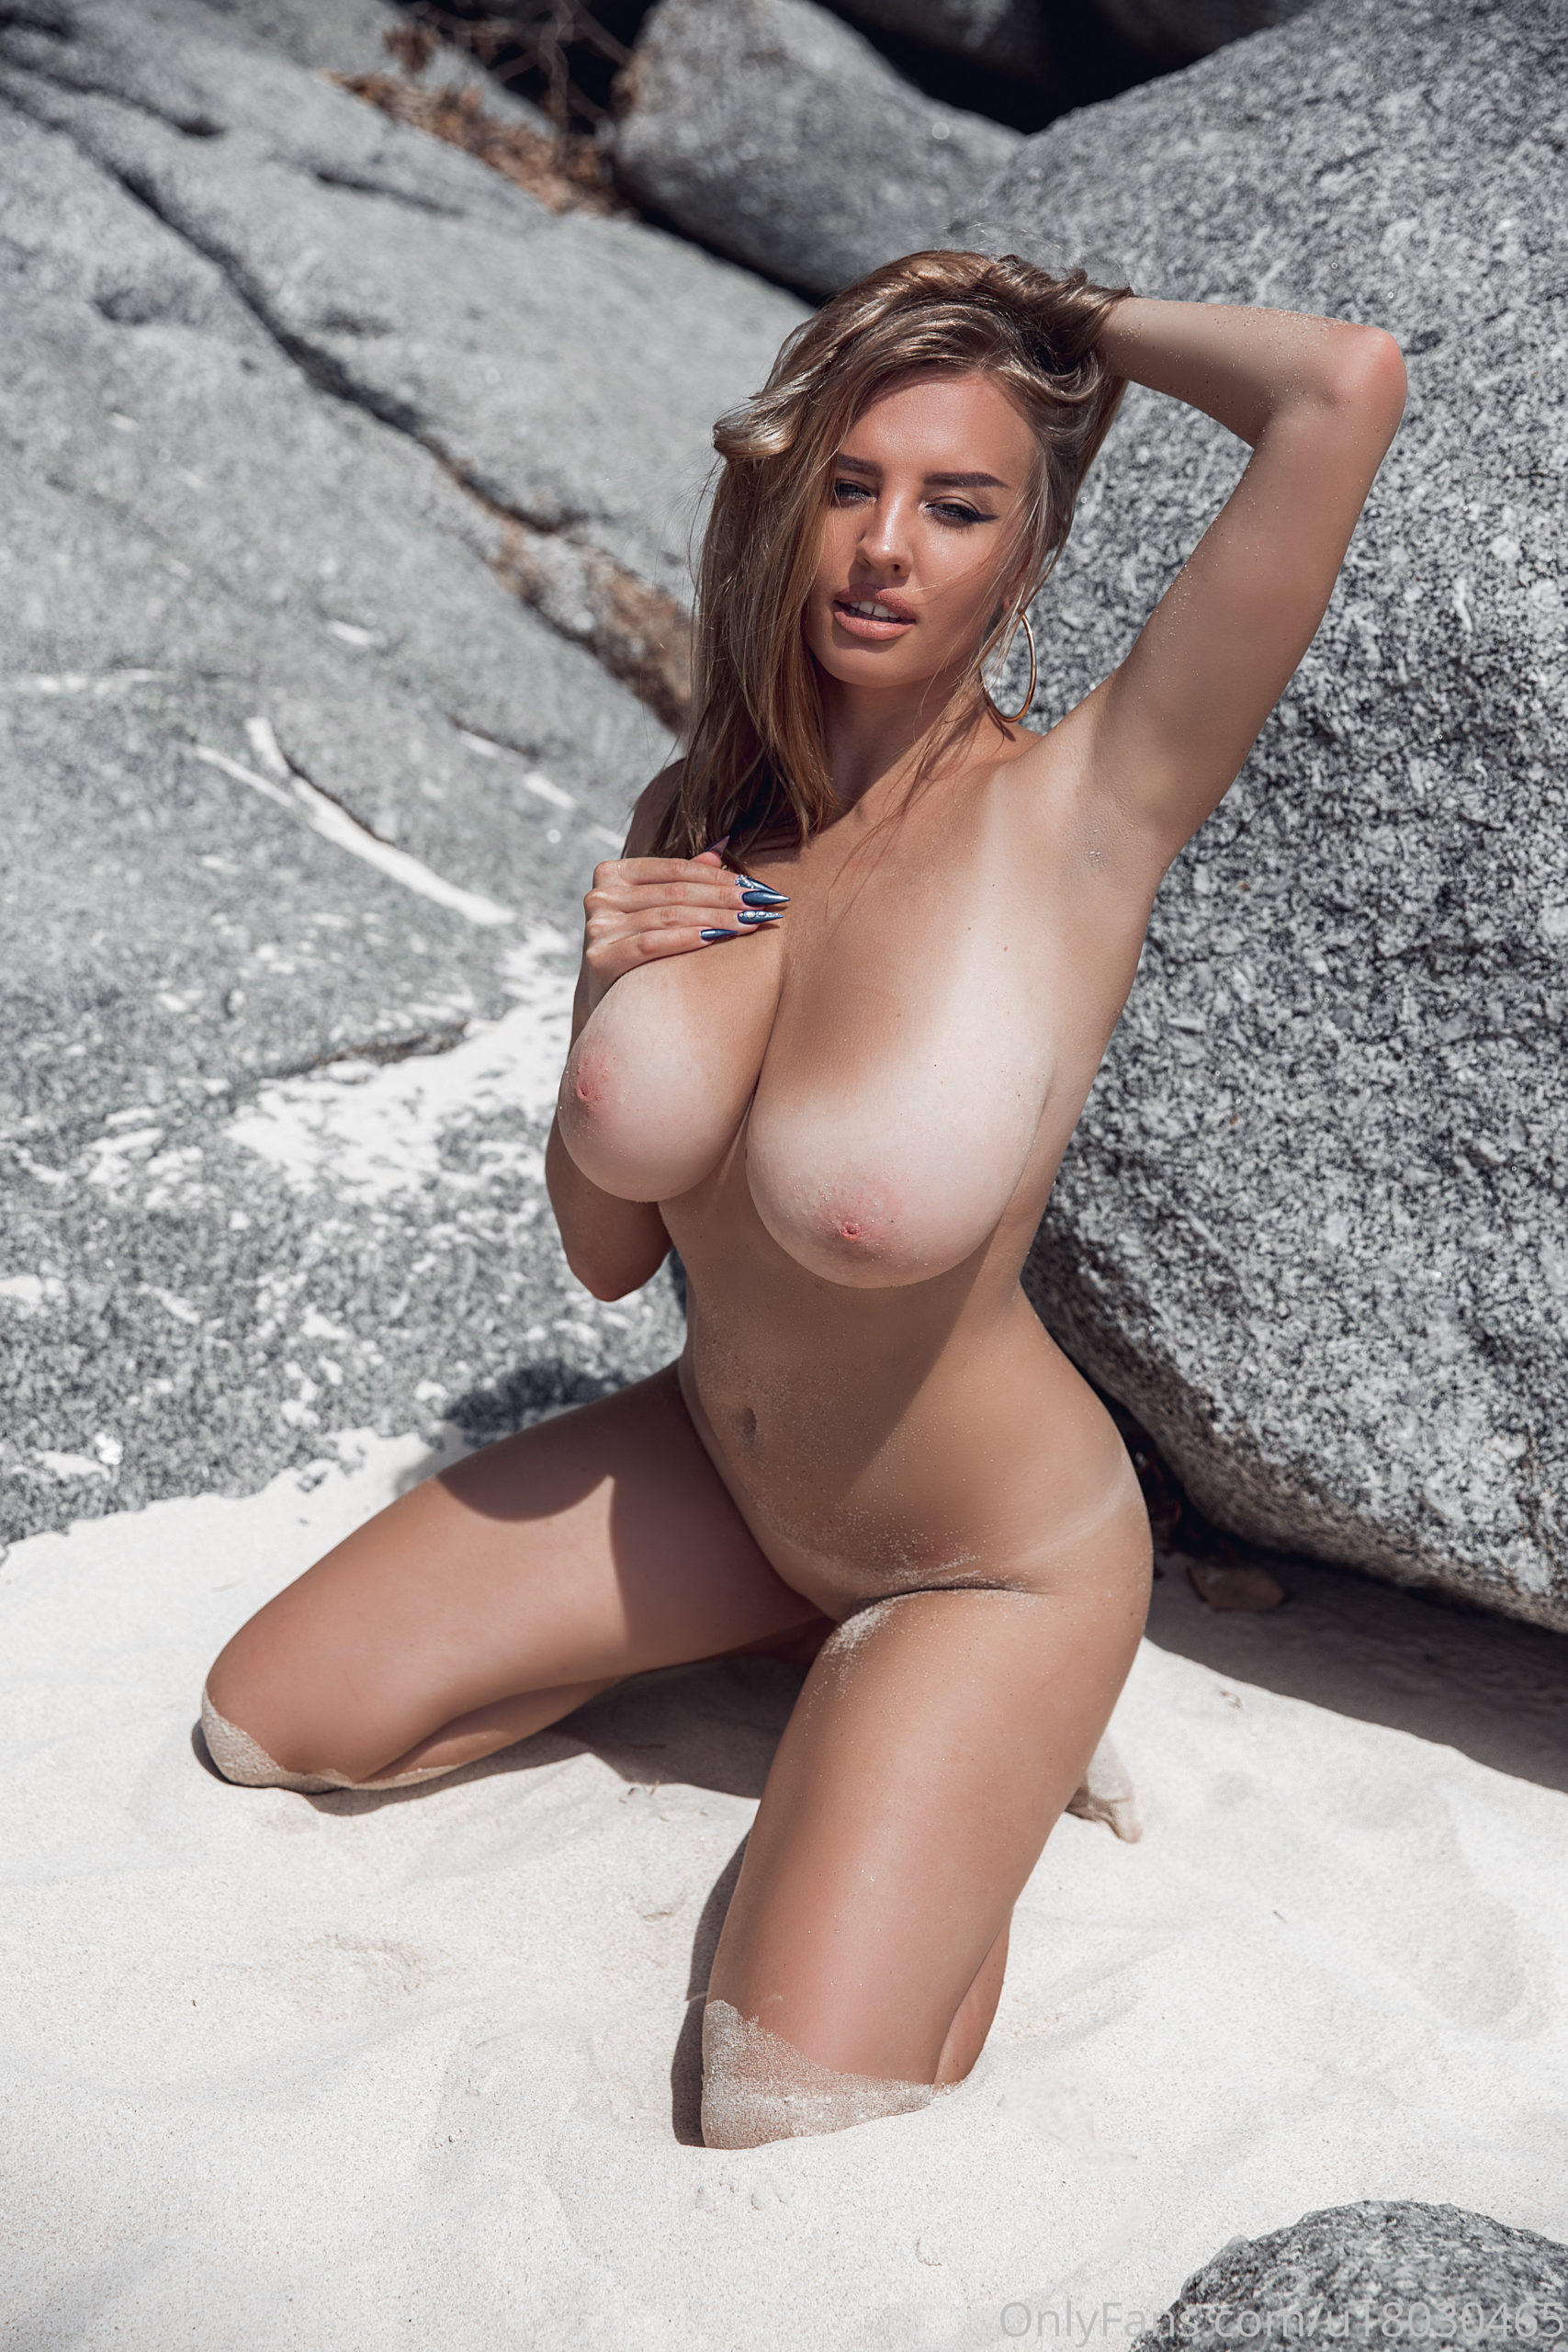 Sigal Acon Onlyfans Nude Gallery Leaked